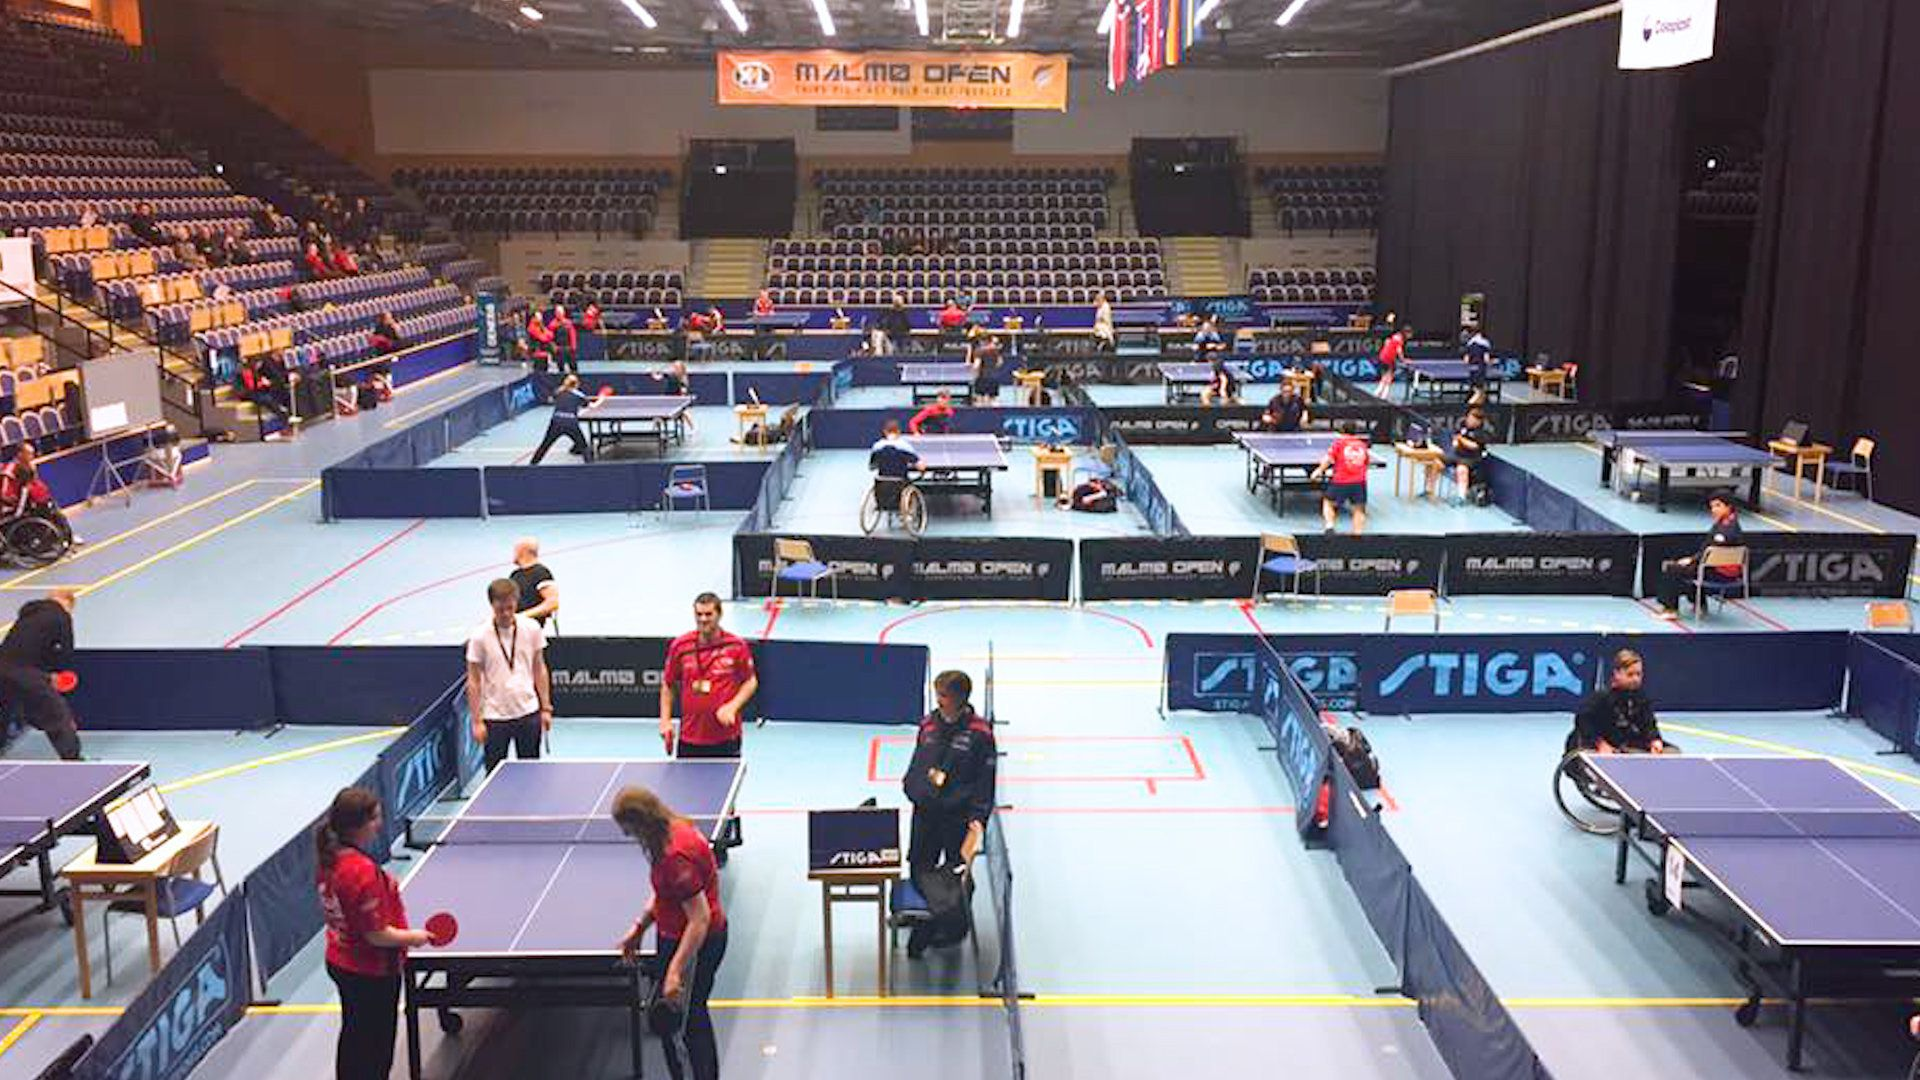 Disabled players from Brighton Table Tennis Club competing in Malmo, Sweden, in